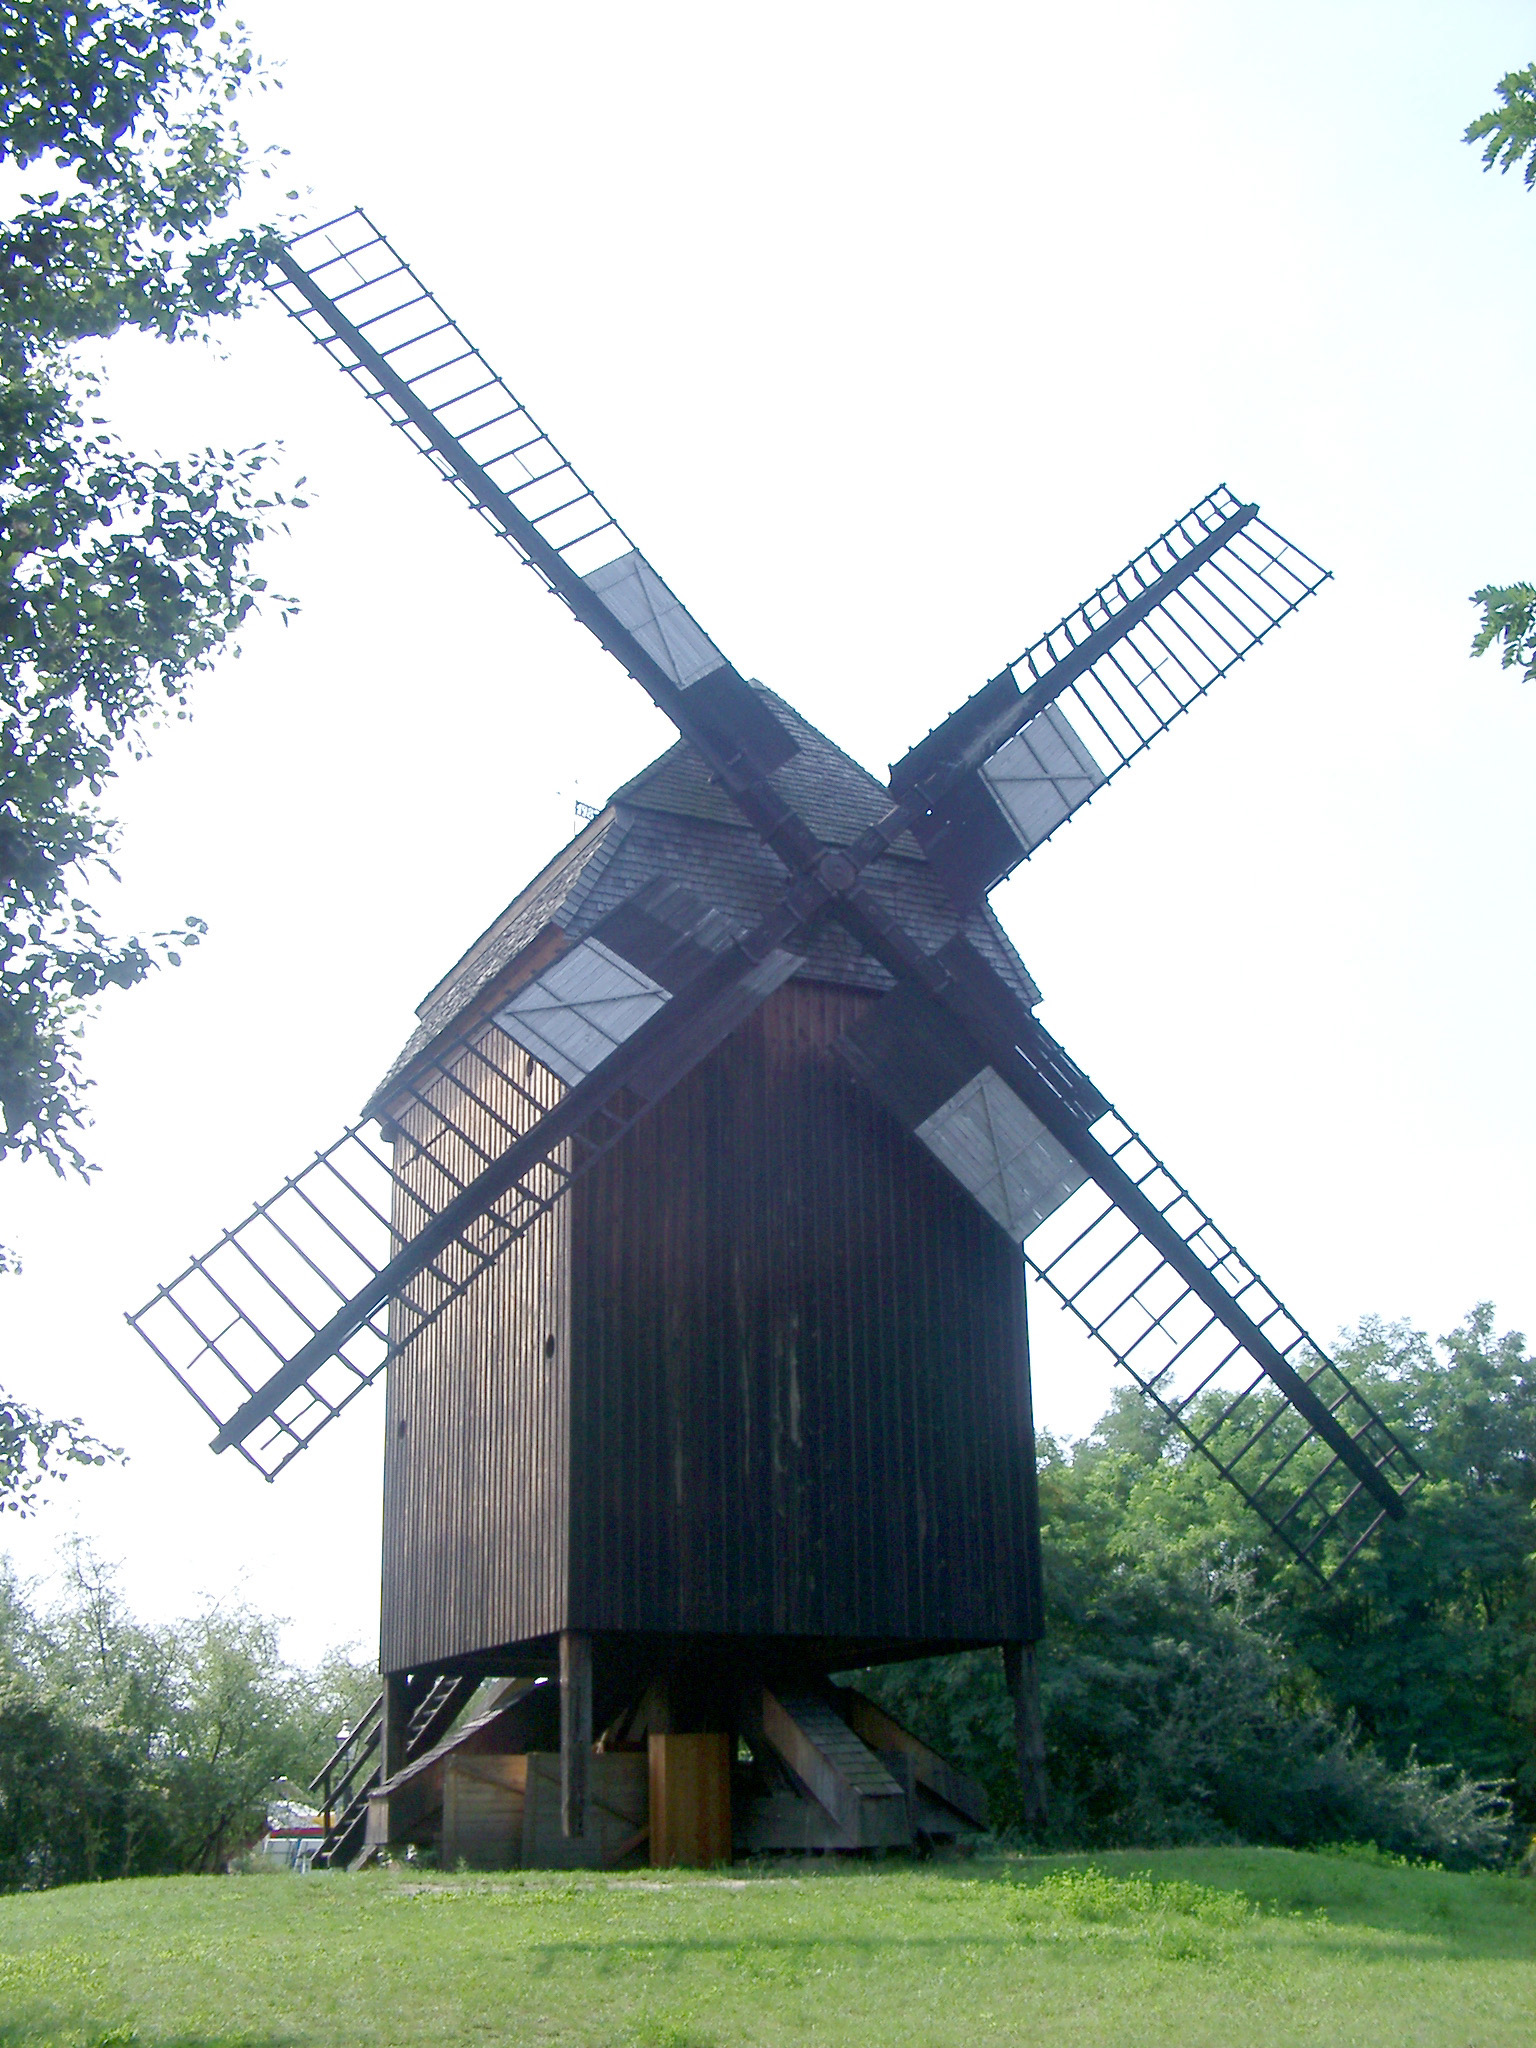 Historic square wooden windmill with large sails in Berlin, now a museum